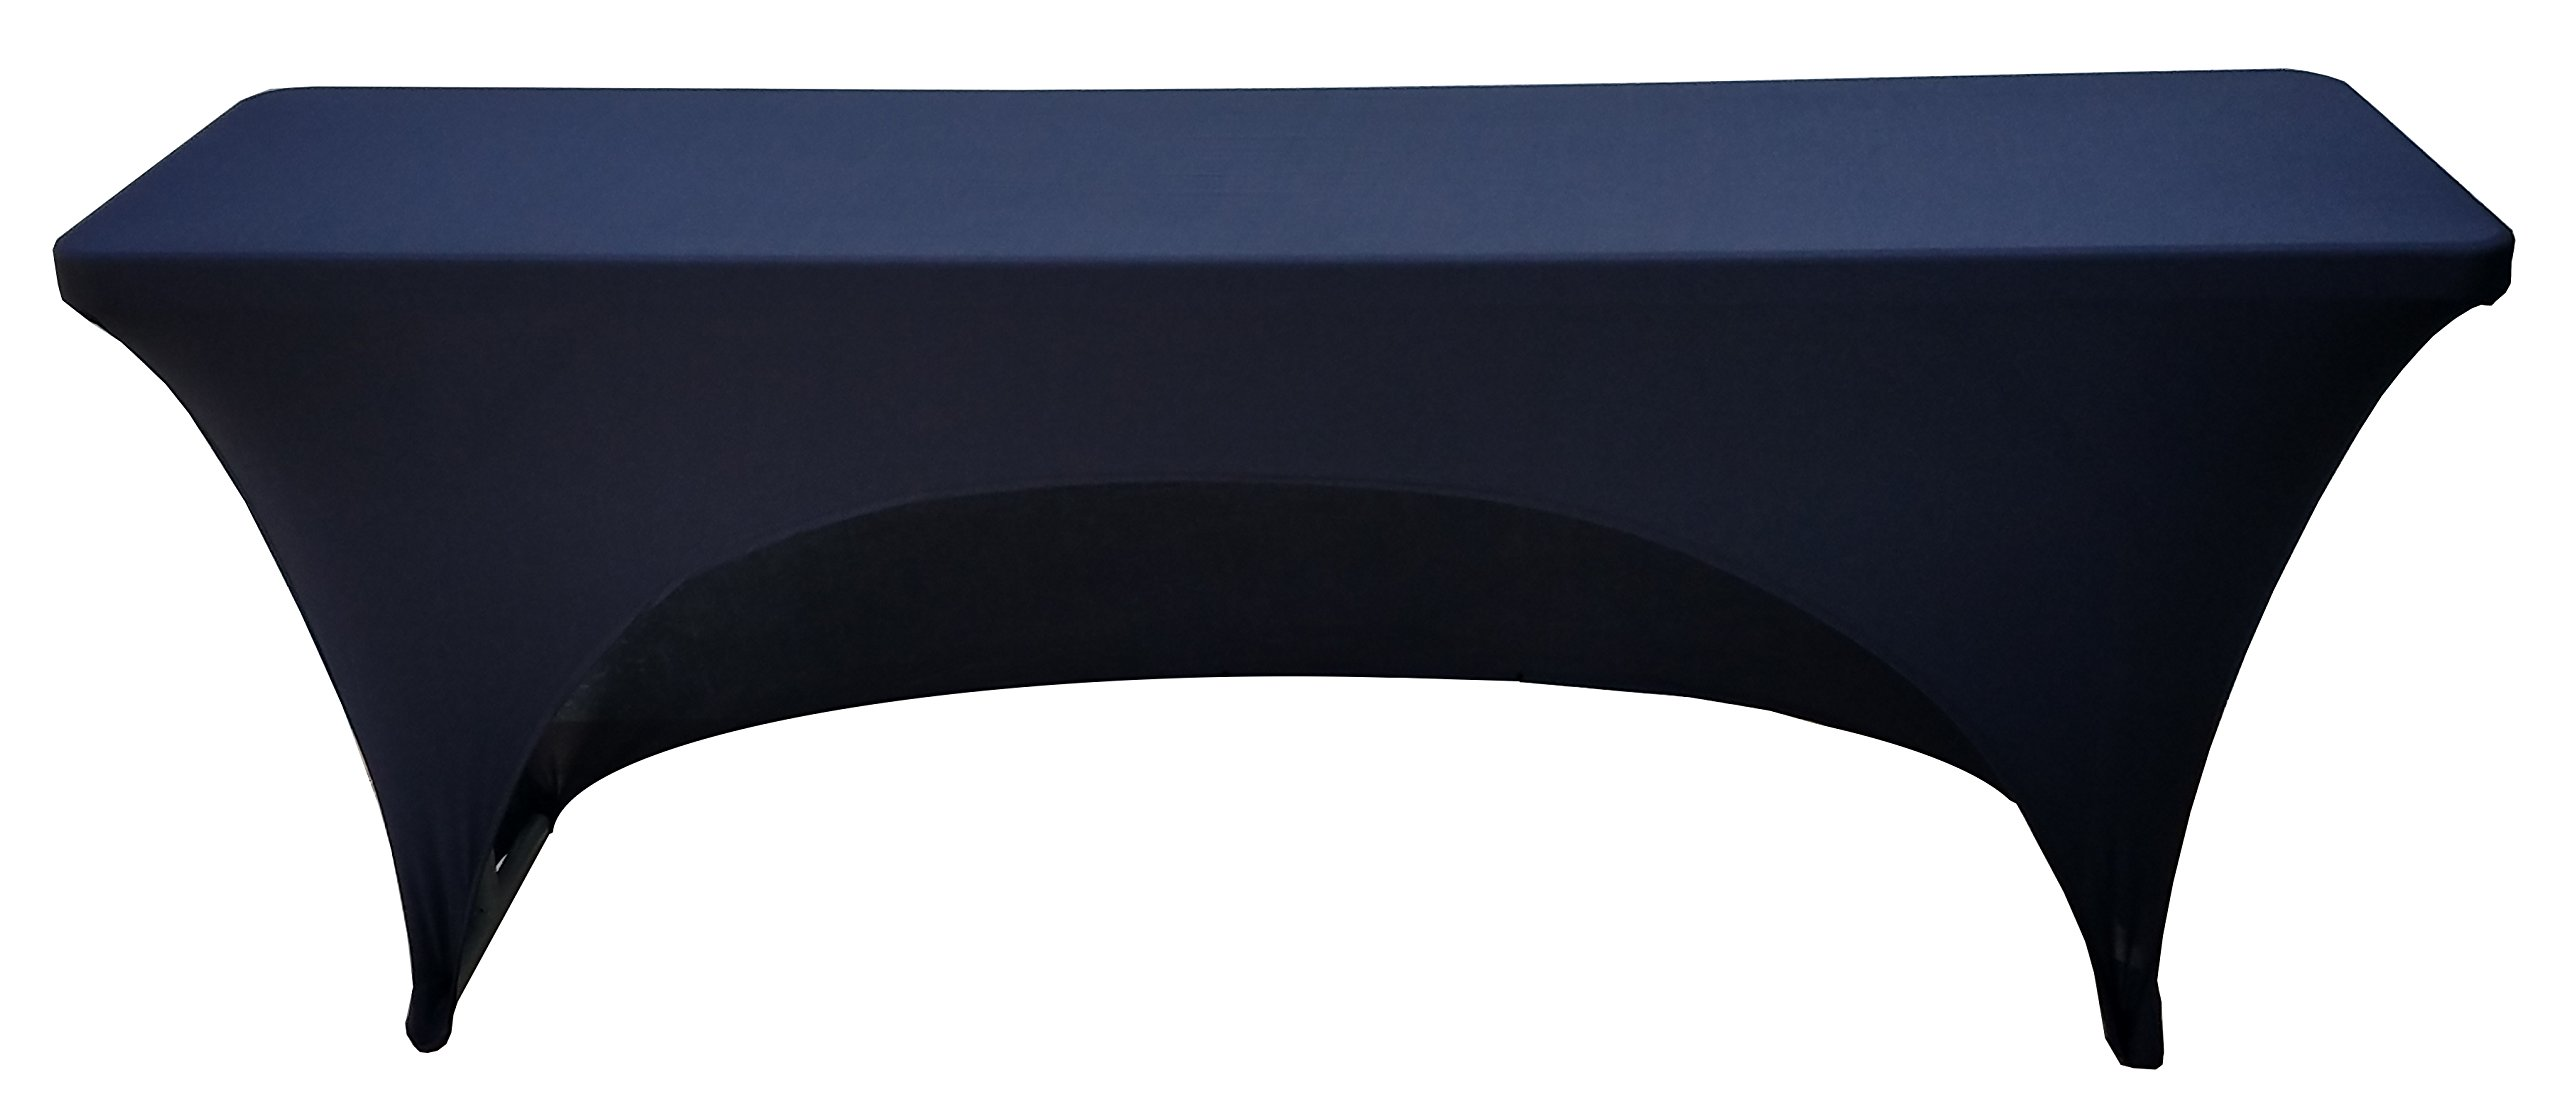 6 Foot Spandex Cover for 18 x 72 Rectangular Training Tables(Black) by Banquet Tables Pro